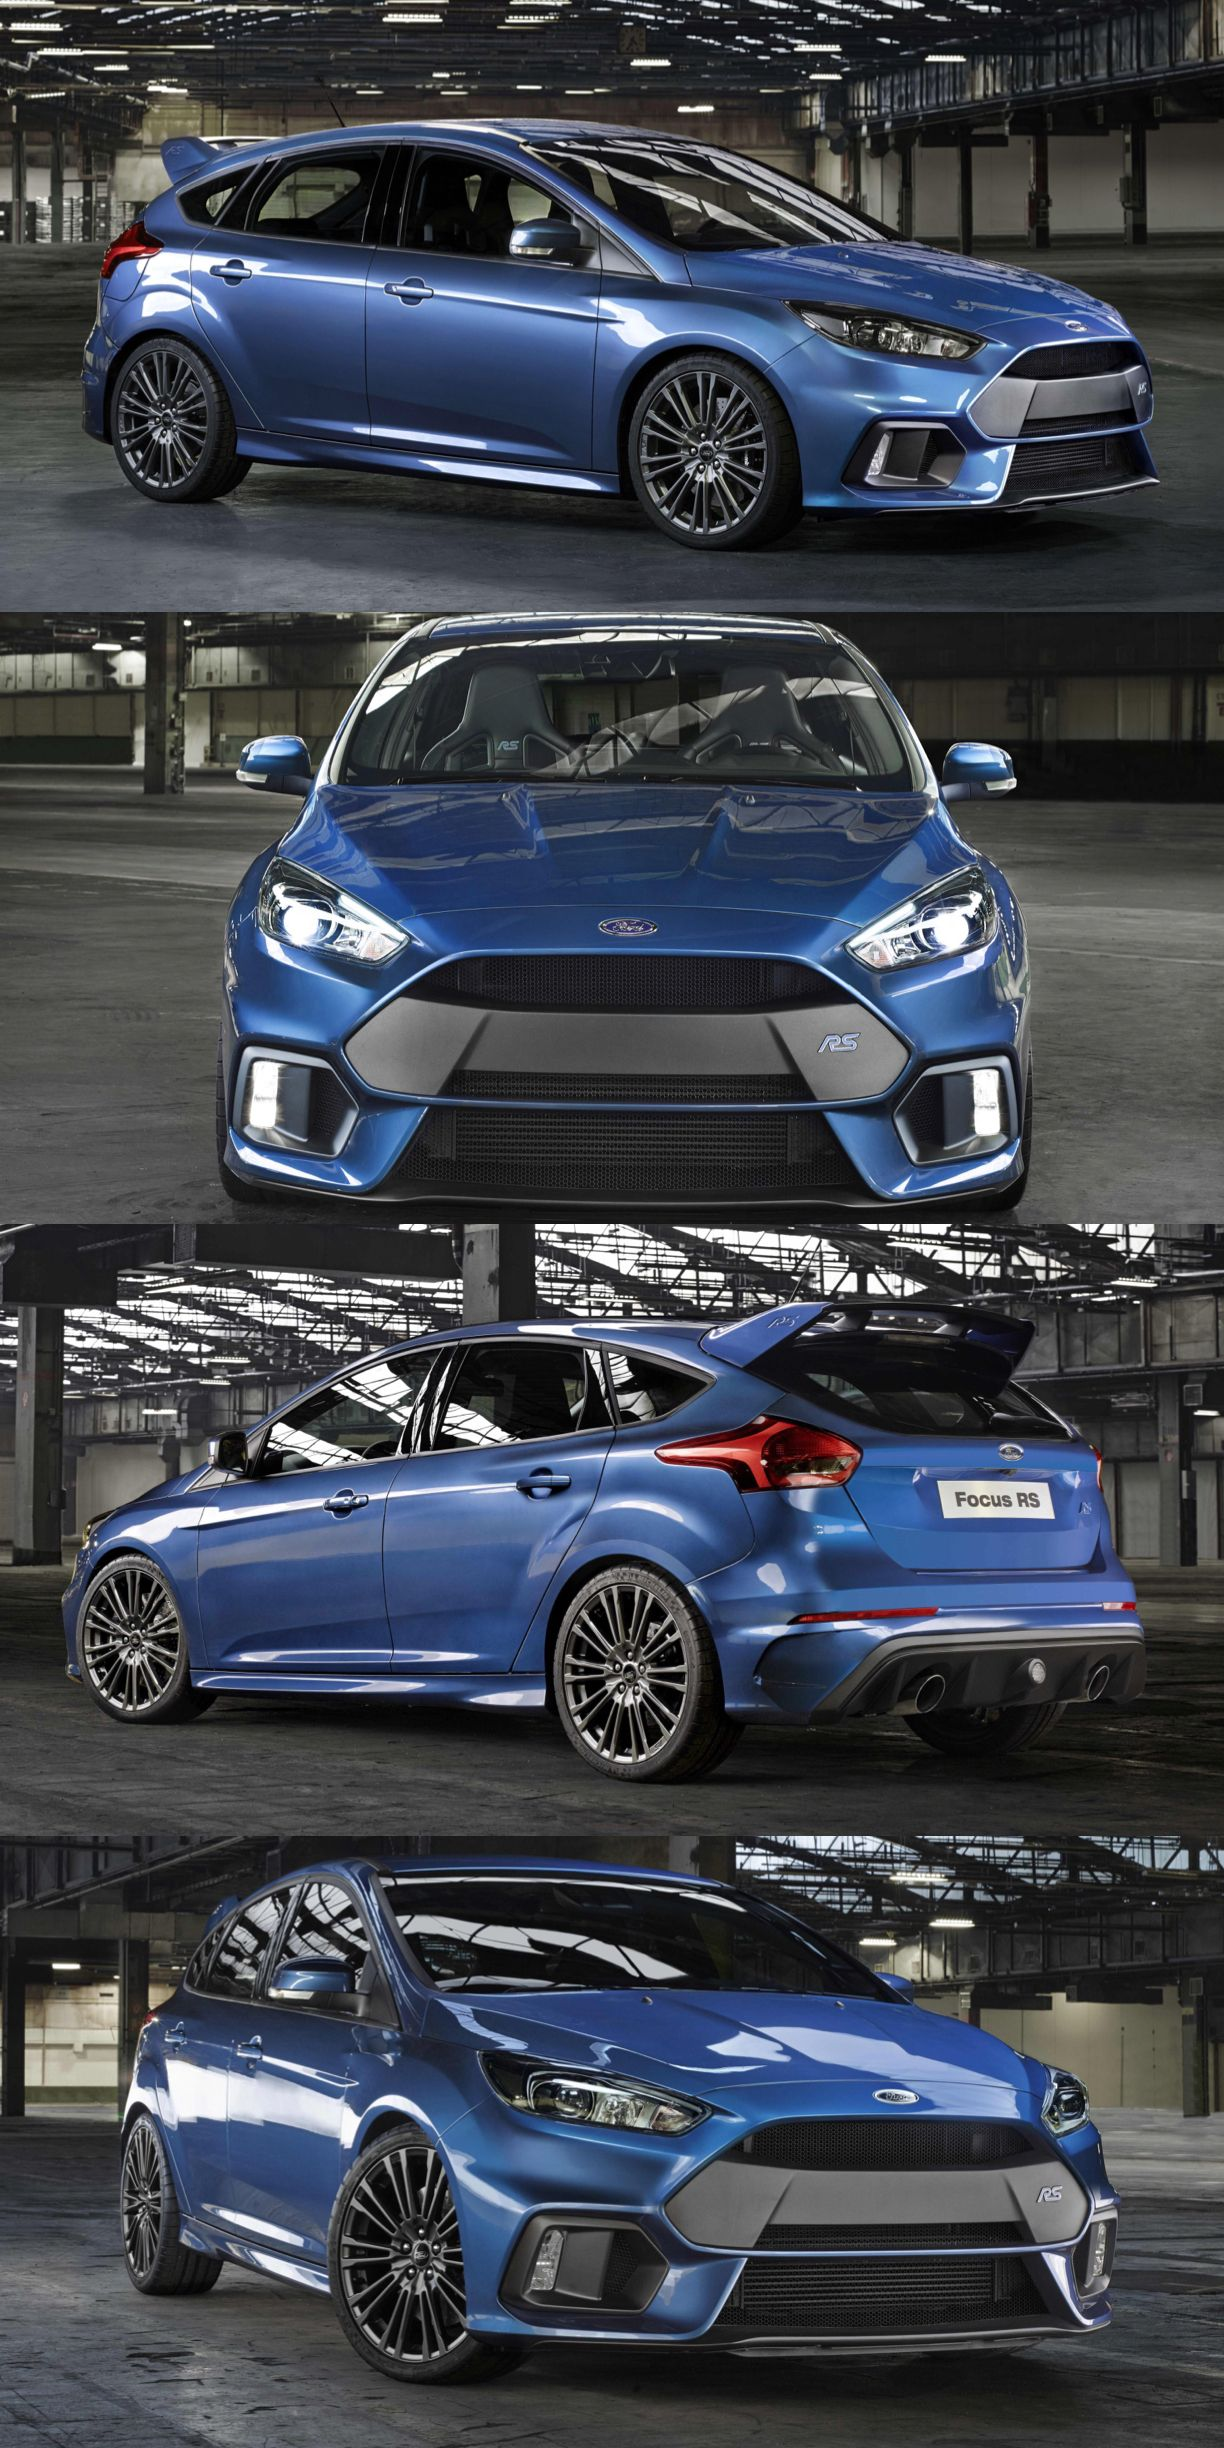 ford focus rs all is revealed today at the global reveal in